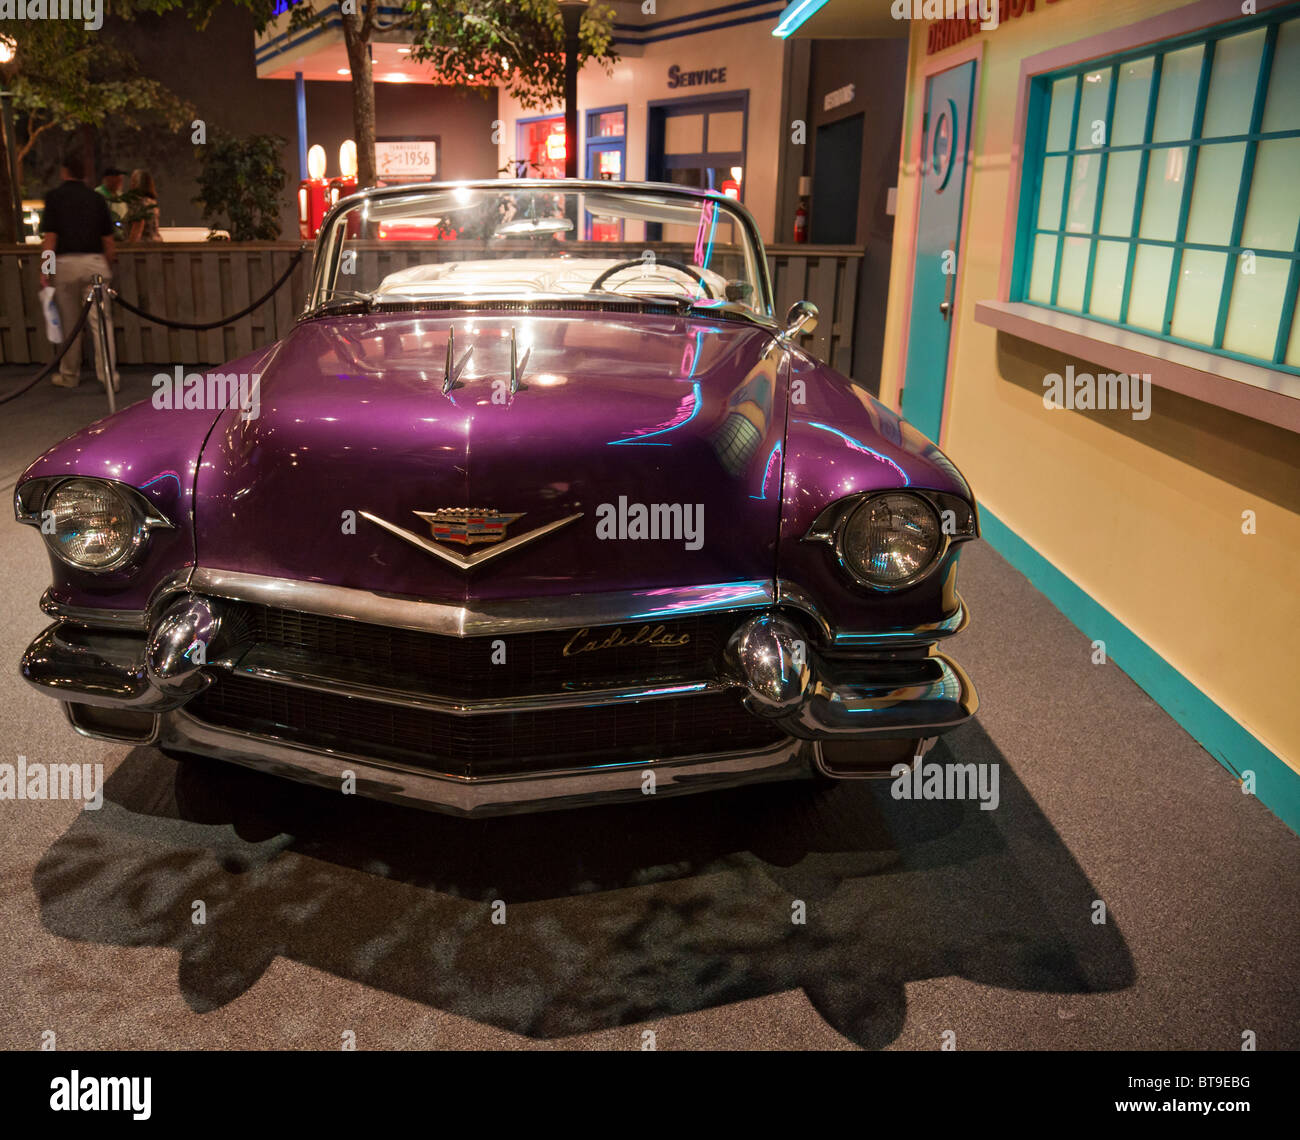 Elvis 39 S 1956 Purple Cadillac Eldorado At The Elvis Presley